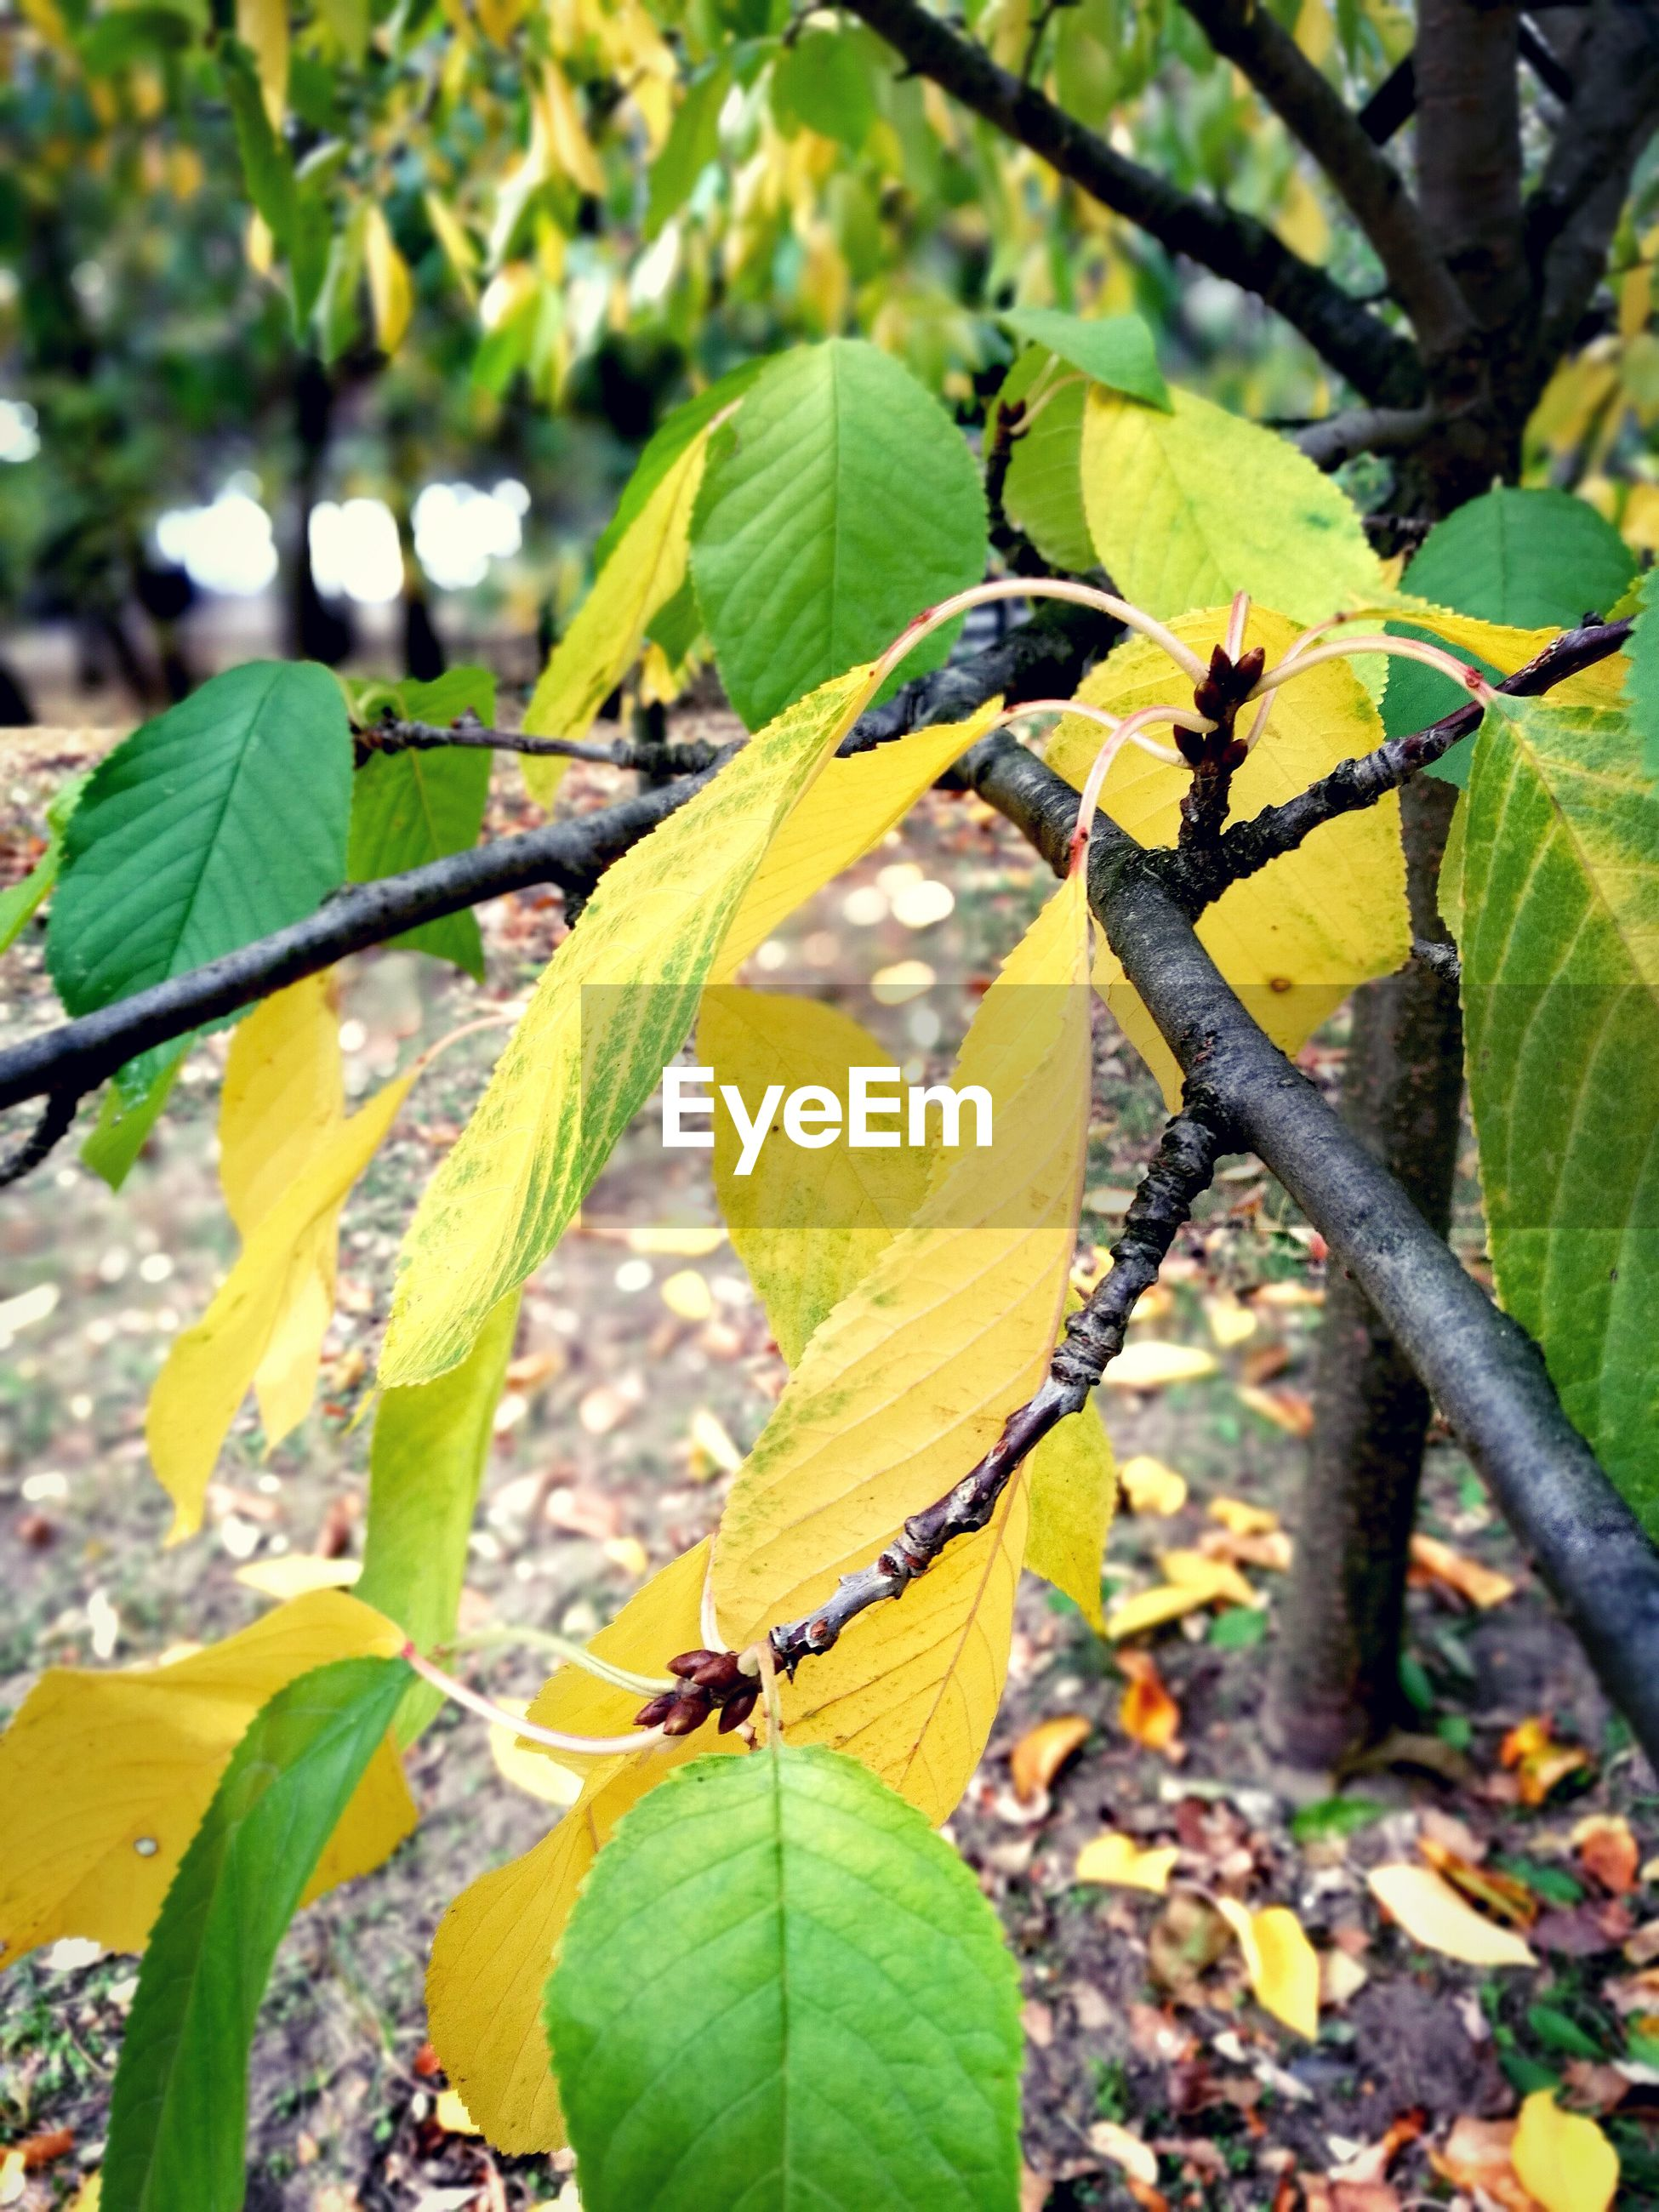 growth, leaf, green color, nature, day, plant, outdoors, focus on foreground, beauty in nature, no people, tree, freshness, close-up, yellow, fragility